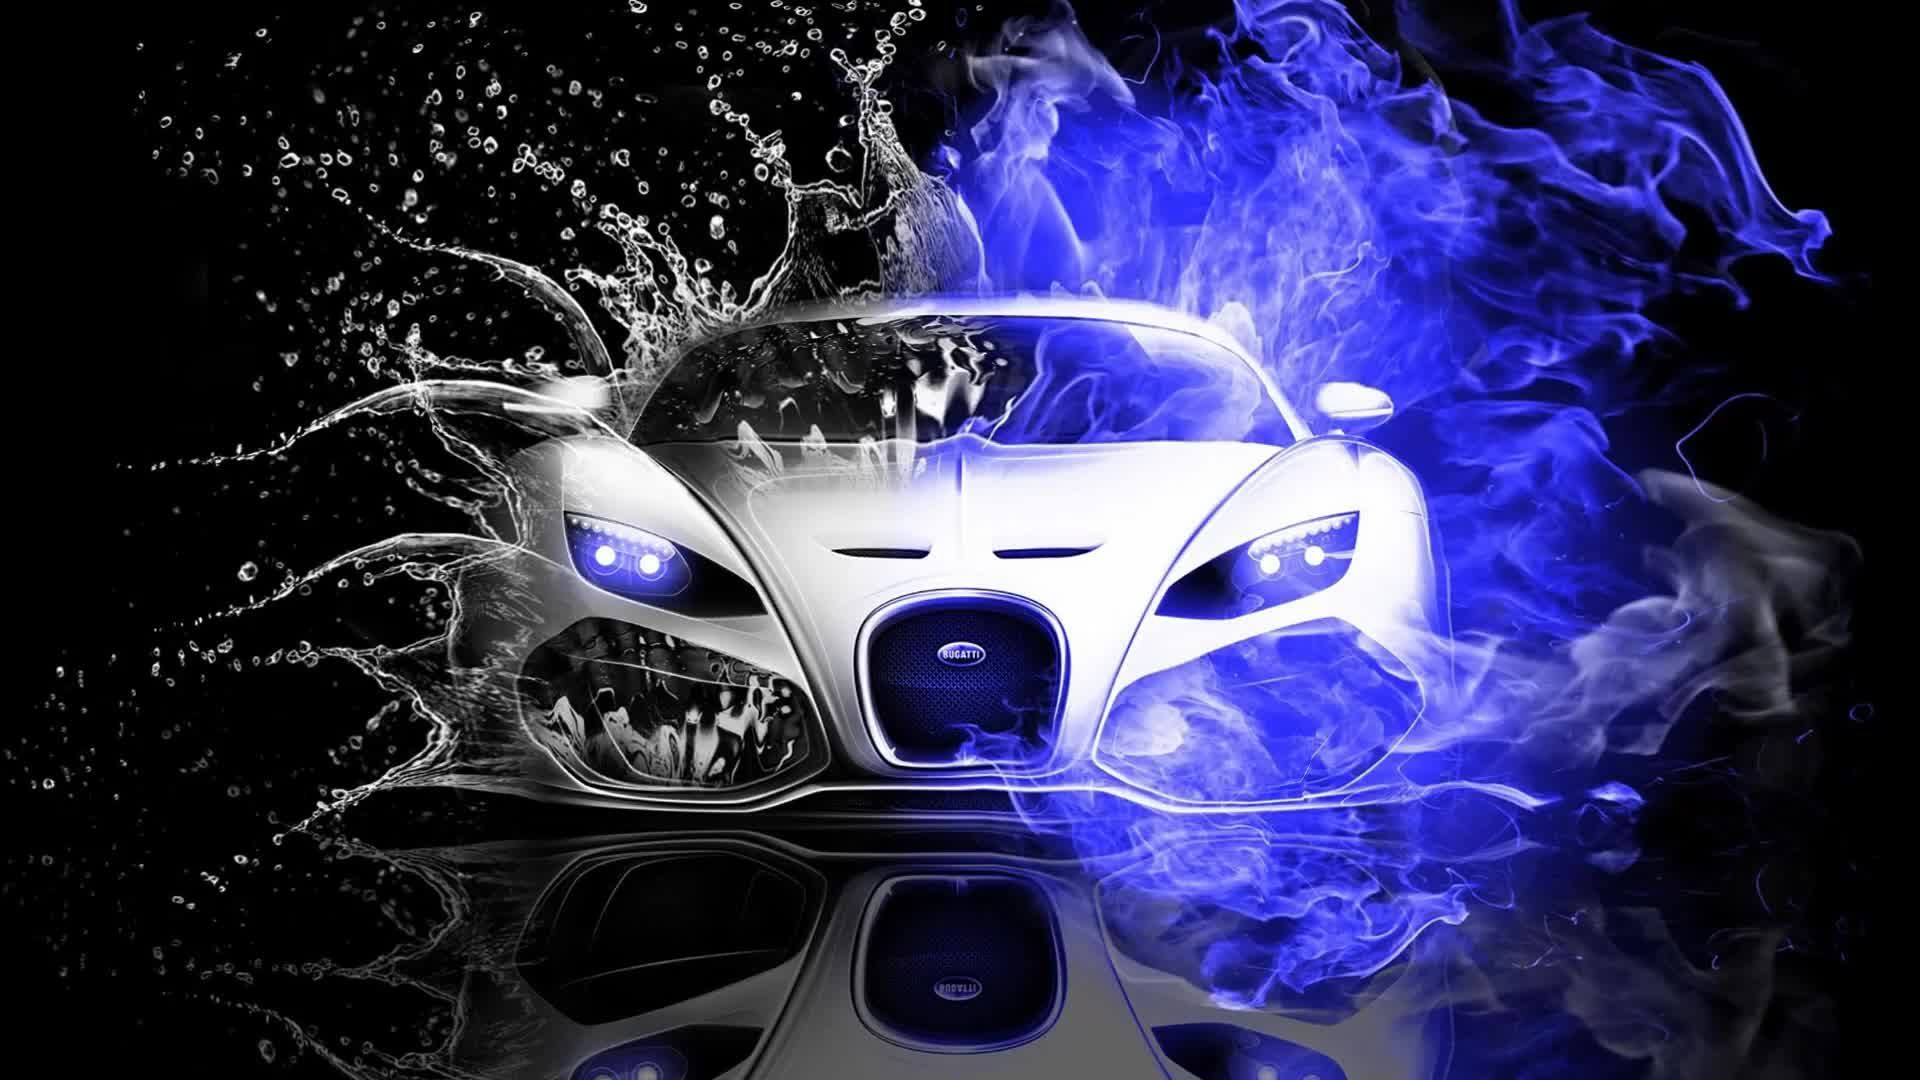 3d Sport Car Bugatti Abstract Shapes Live Wallpaper Bugatti Wallpapers Sports Cars Bugatti Car Wallpapers